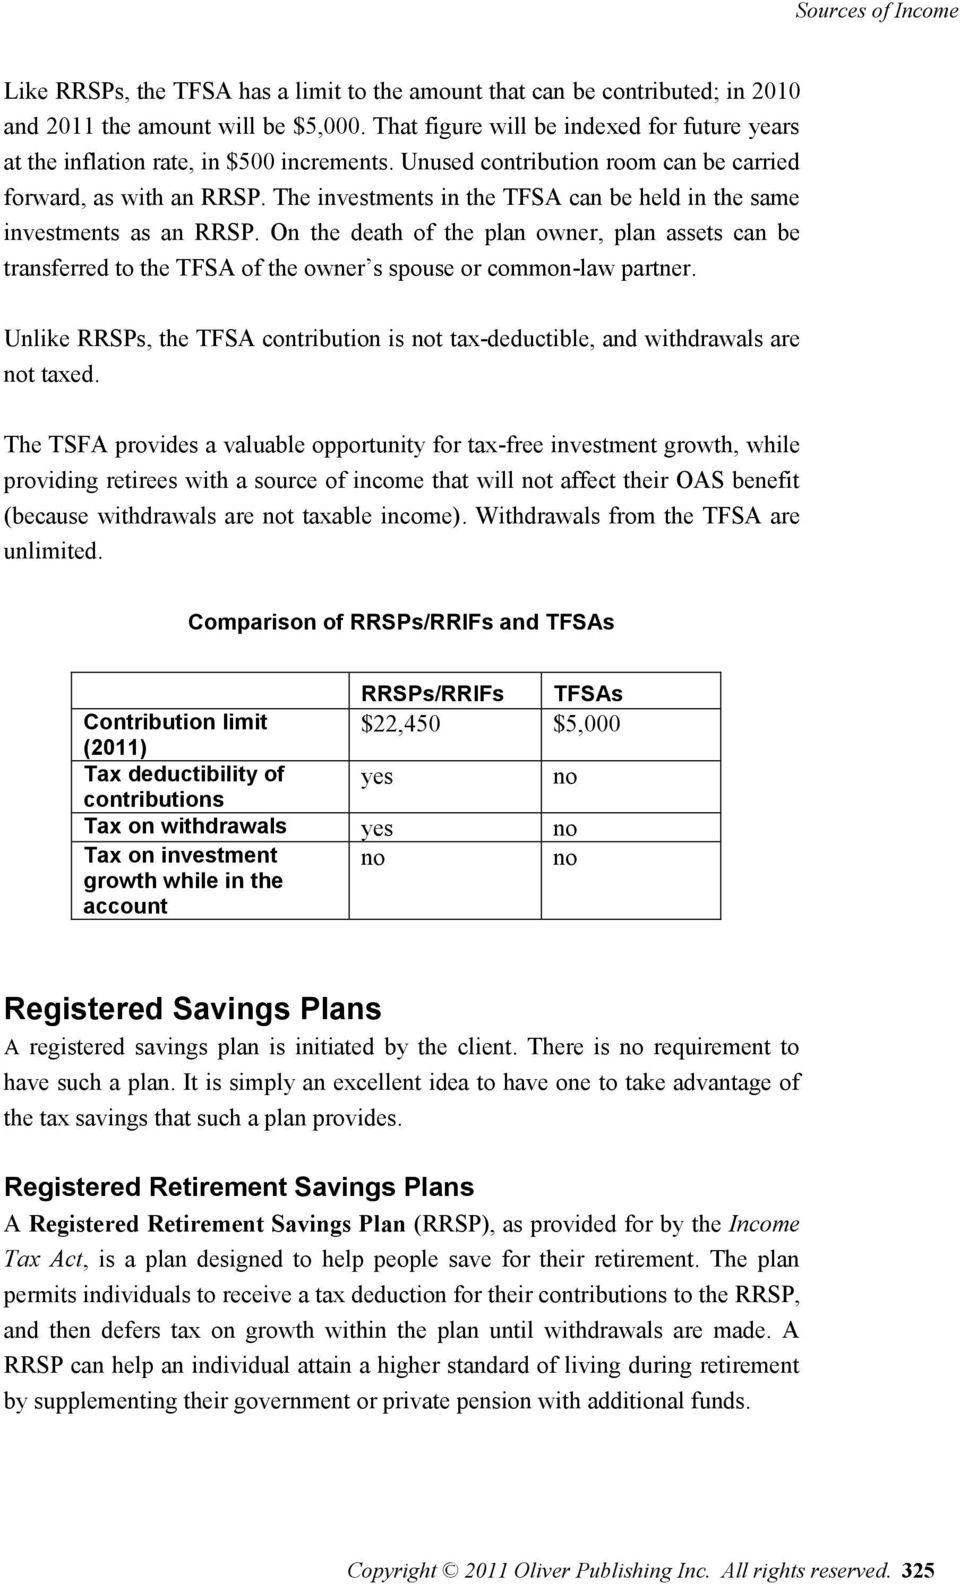 The investments in the TFSA can be held in the same investments as an RRSP. On the death of the plan owner, plan assets can be transferred to the TFSA of the owner s spouse or common-law partner.